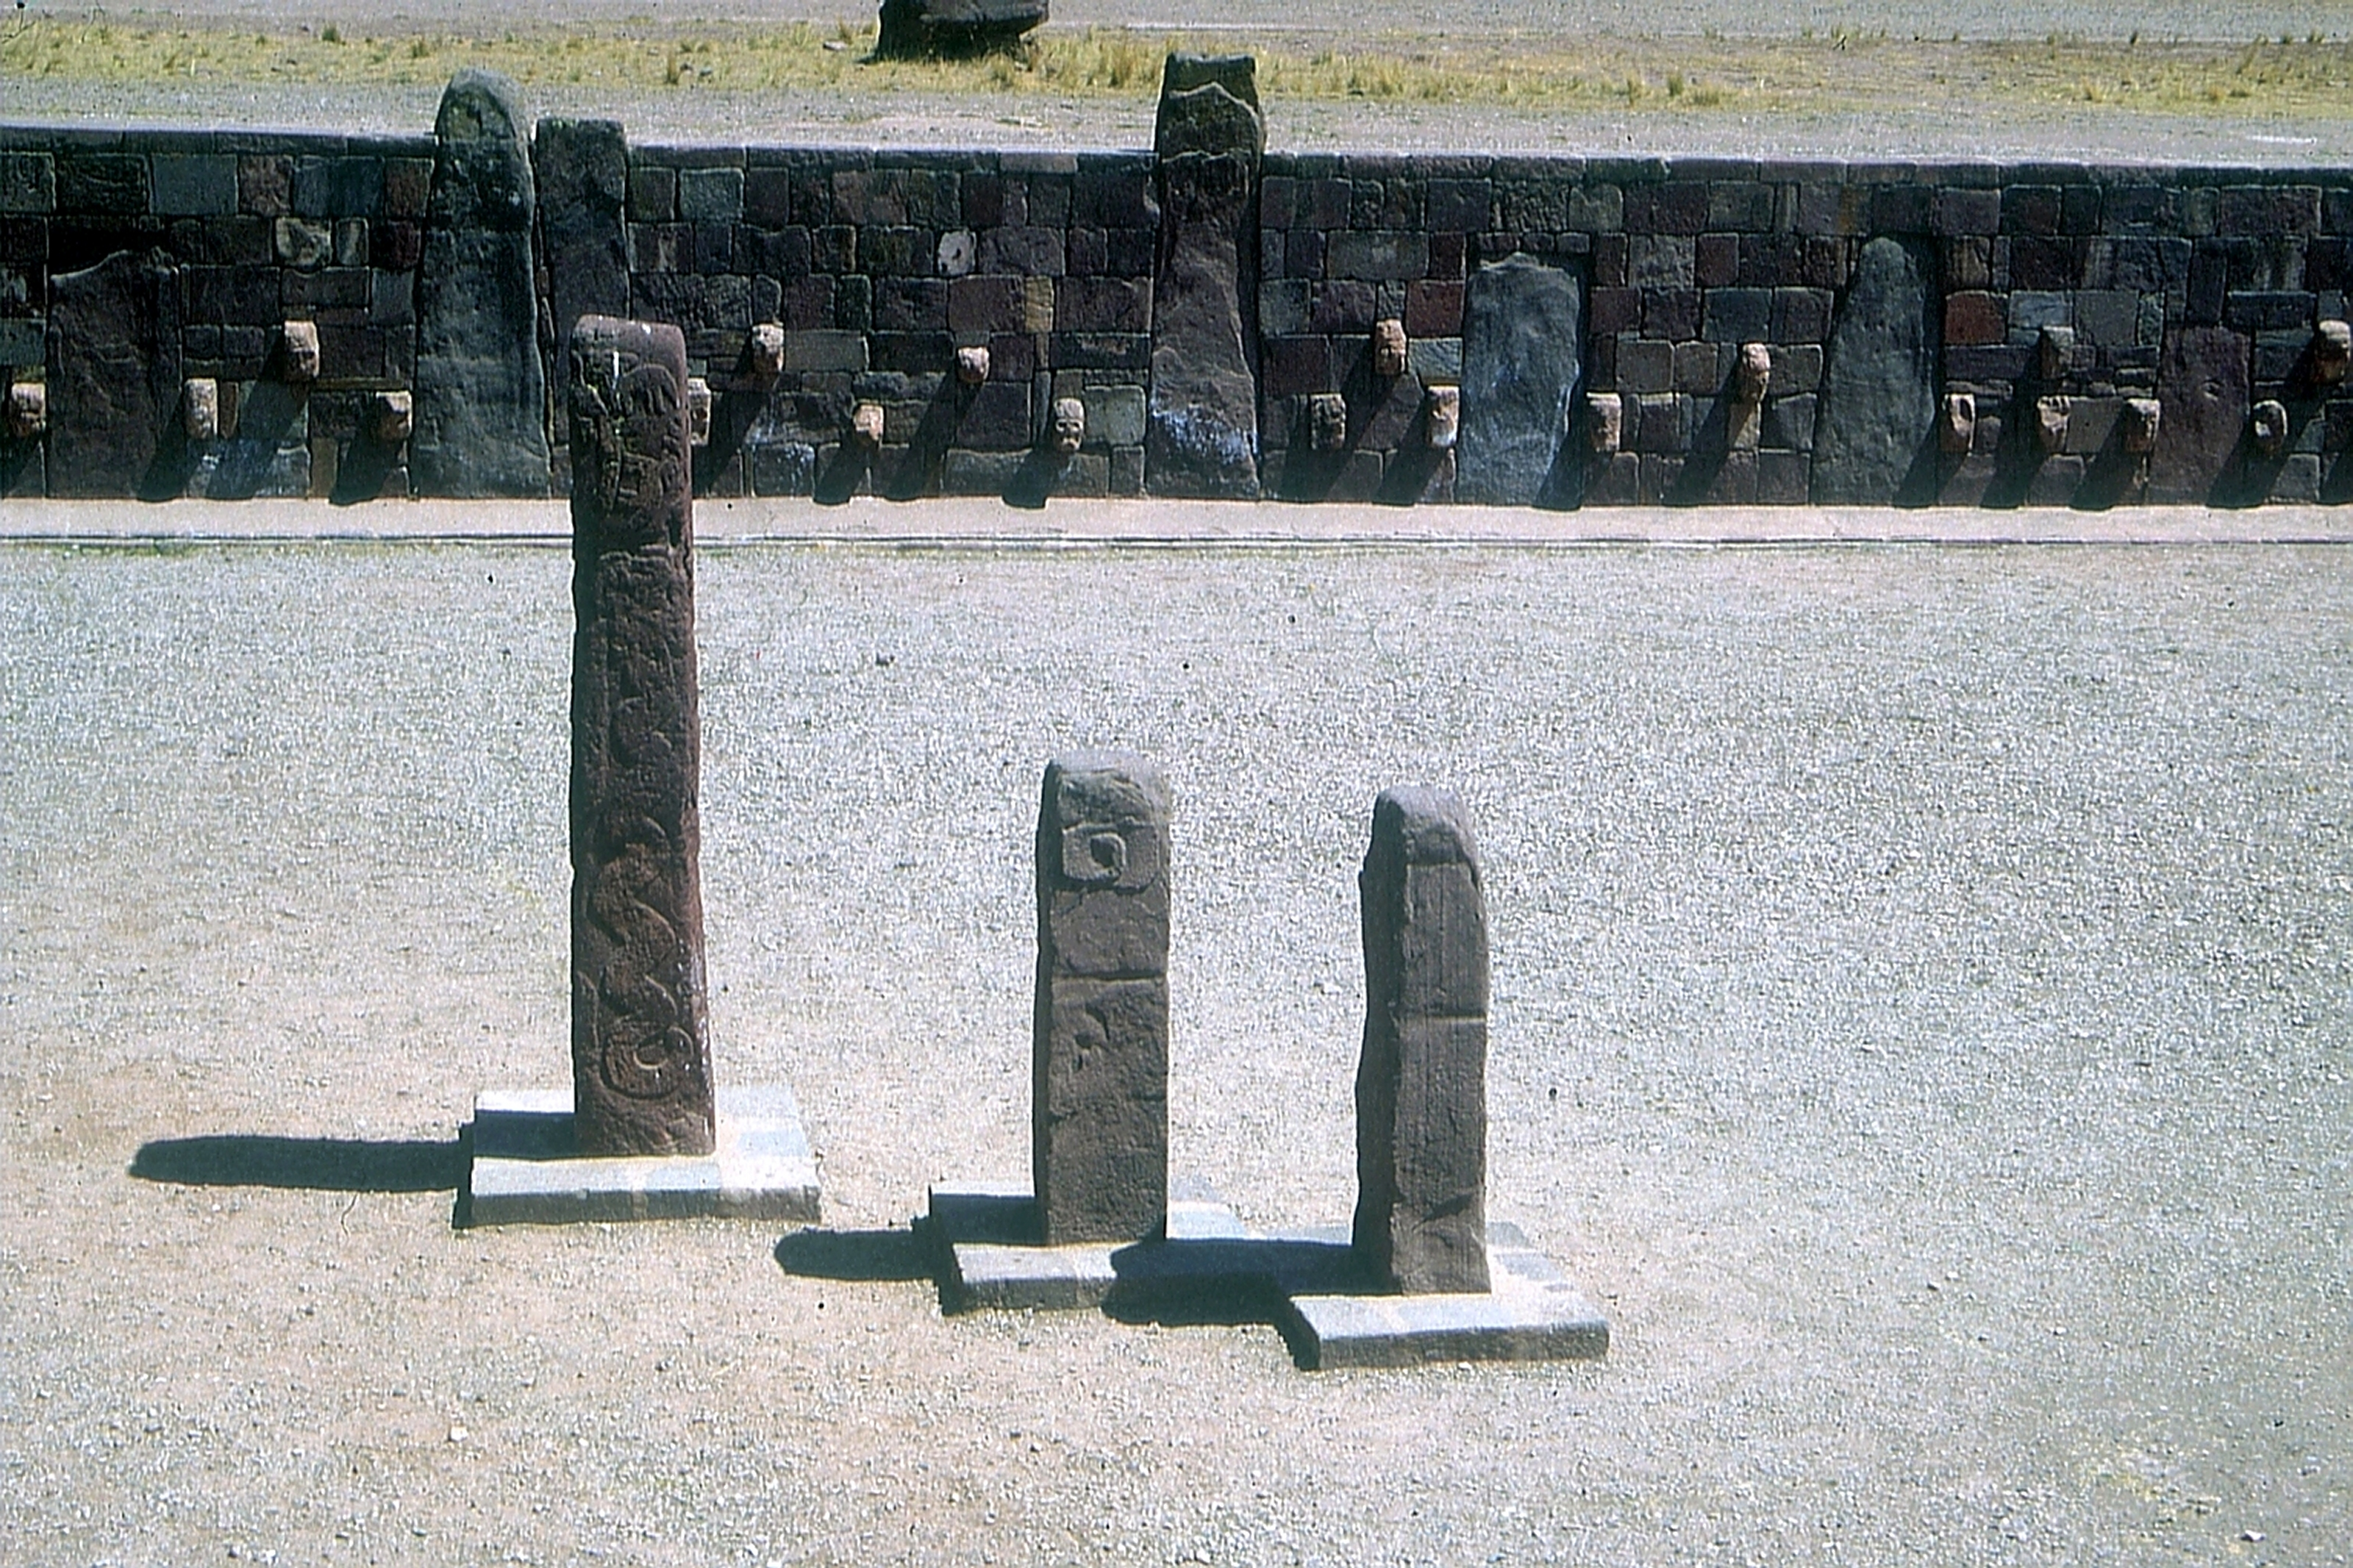 Tiwanaku By Dr. Eugen Lehle (Eigenes Werk (own work) https://bodenlabor.de) [GFDL (https://www.gnu.org/copyleft/fdl.html) or CC-BY-SA-3.0-2.5-2.0-1.0 (https://creativecommons.org/licenses/by-sa/3.0)], via Wikimedia Commons